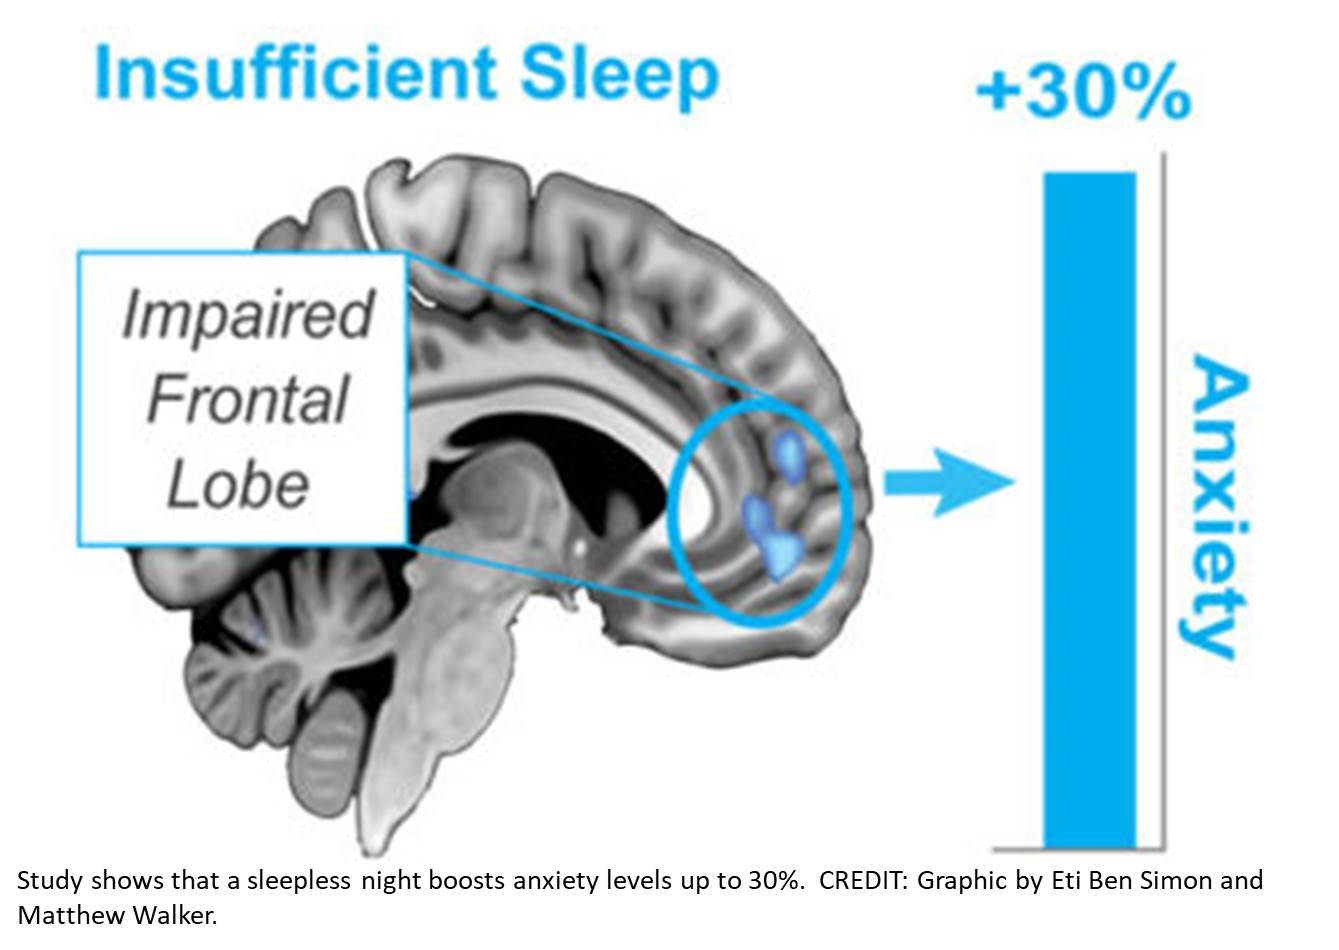 A sleepless night significantly increases emotional stress levels